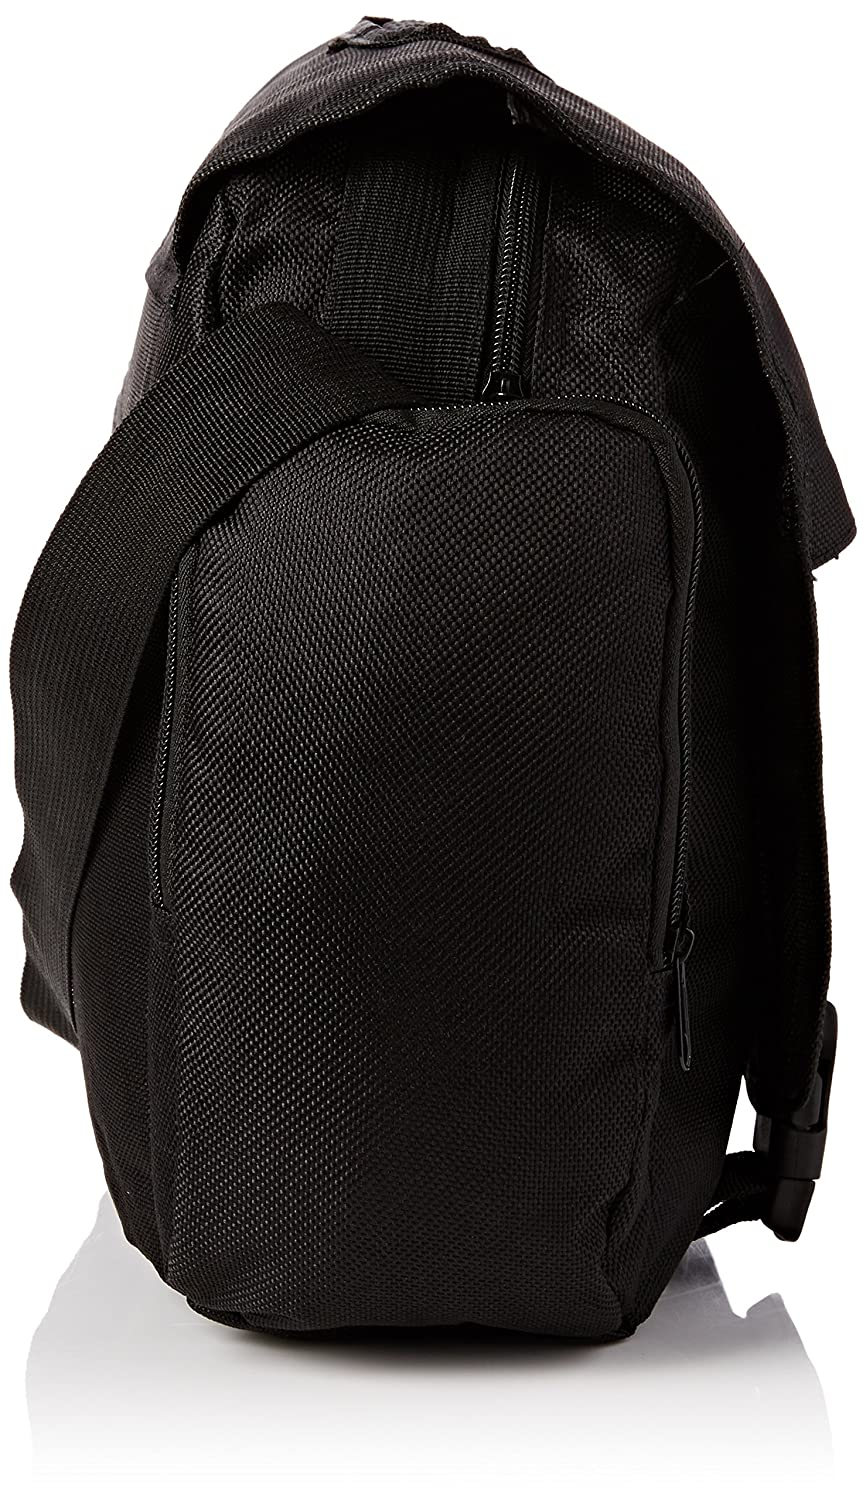 12fe53330b6f Large Messenger Shoulder Meeting Bag for School College Office W Organiser  Pocket - Holds A4 Folders: Amazon.co.uk: Luggage